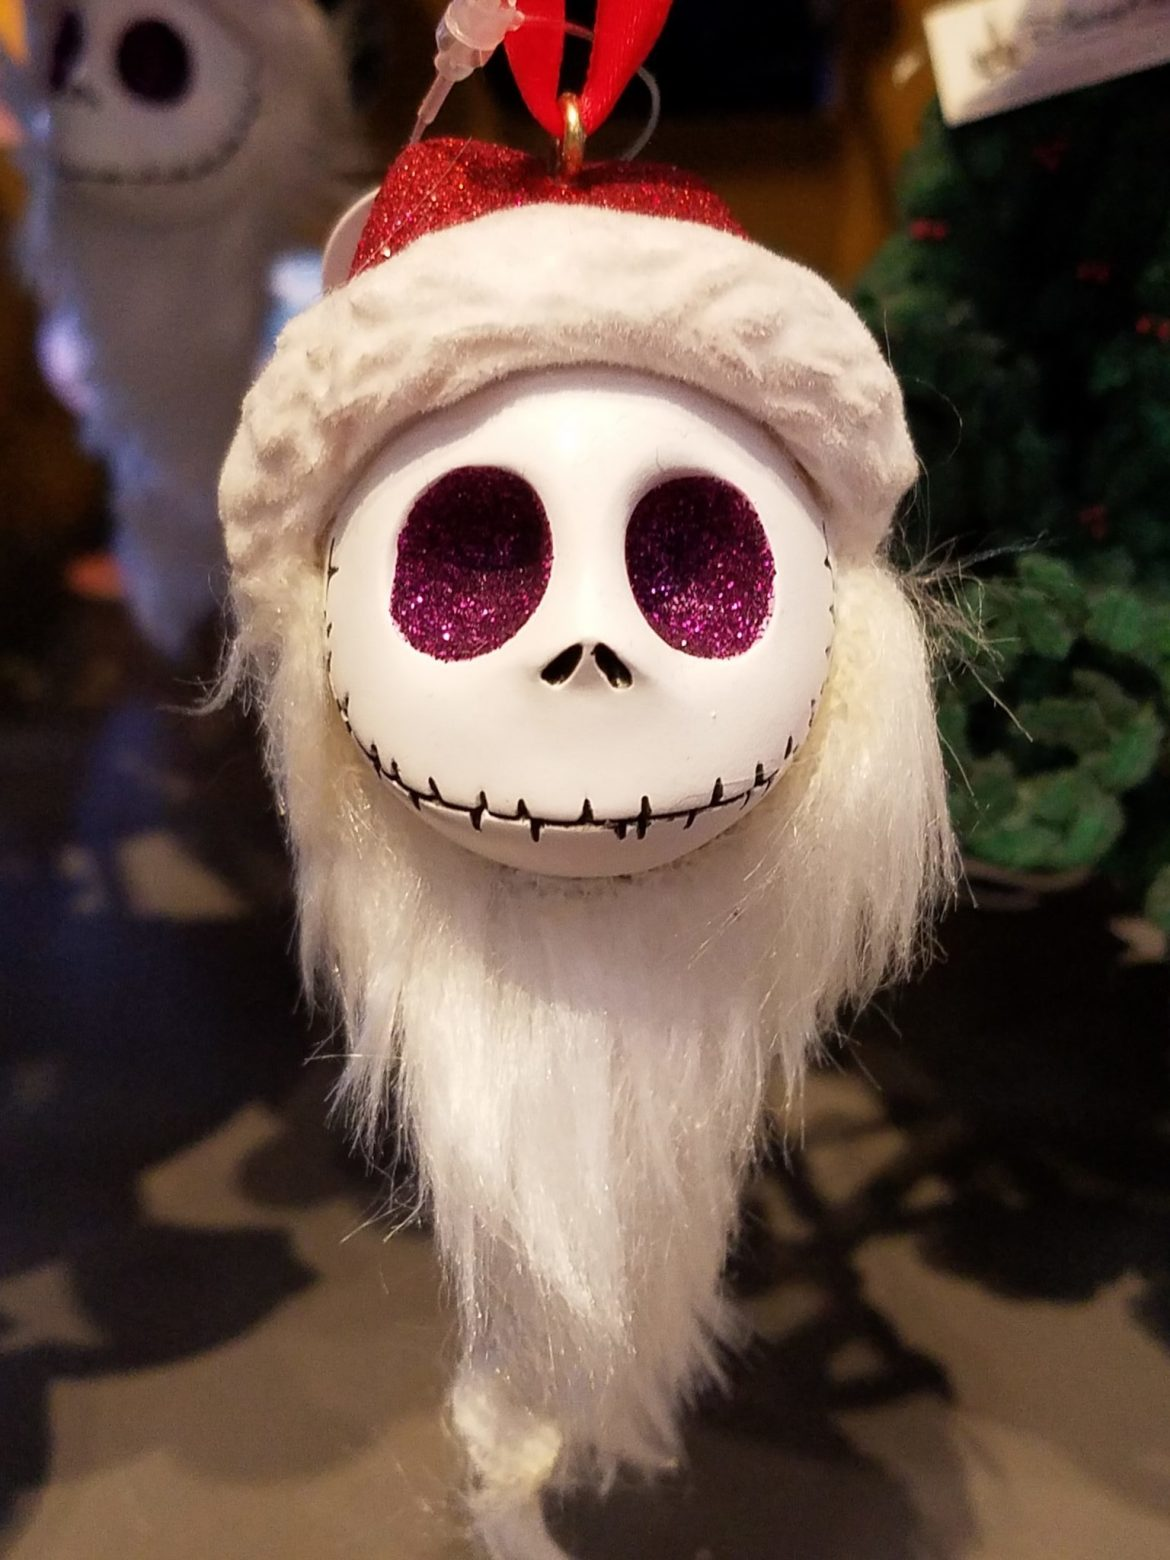 Decorate For Halloween With These Fun Nightmare Before Christmas Ornaments